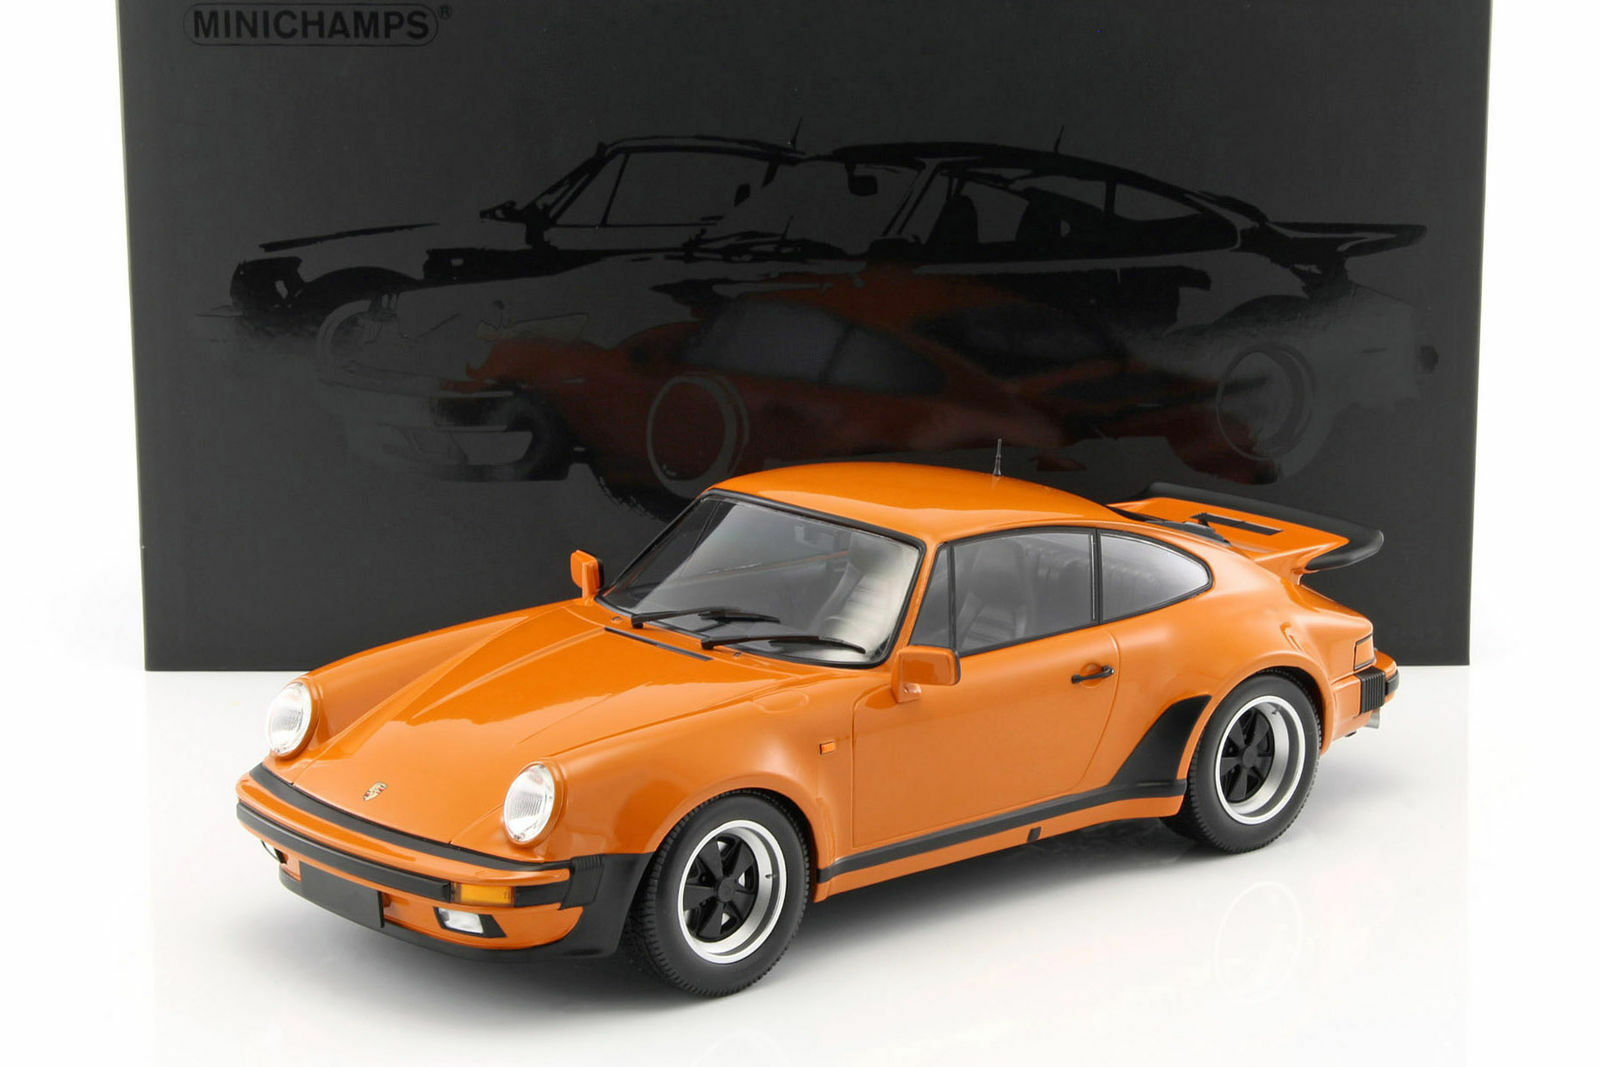 MINICHAMPS 1977 Porsche 911 Turbo arancia Met 1 12 Large Car New LE 100pcs